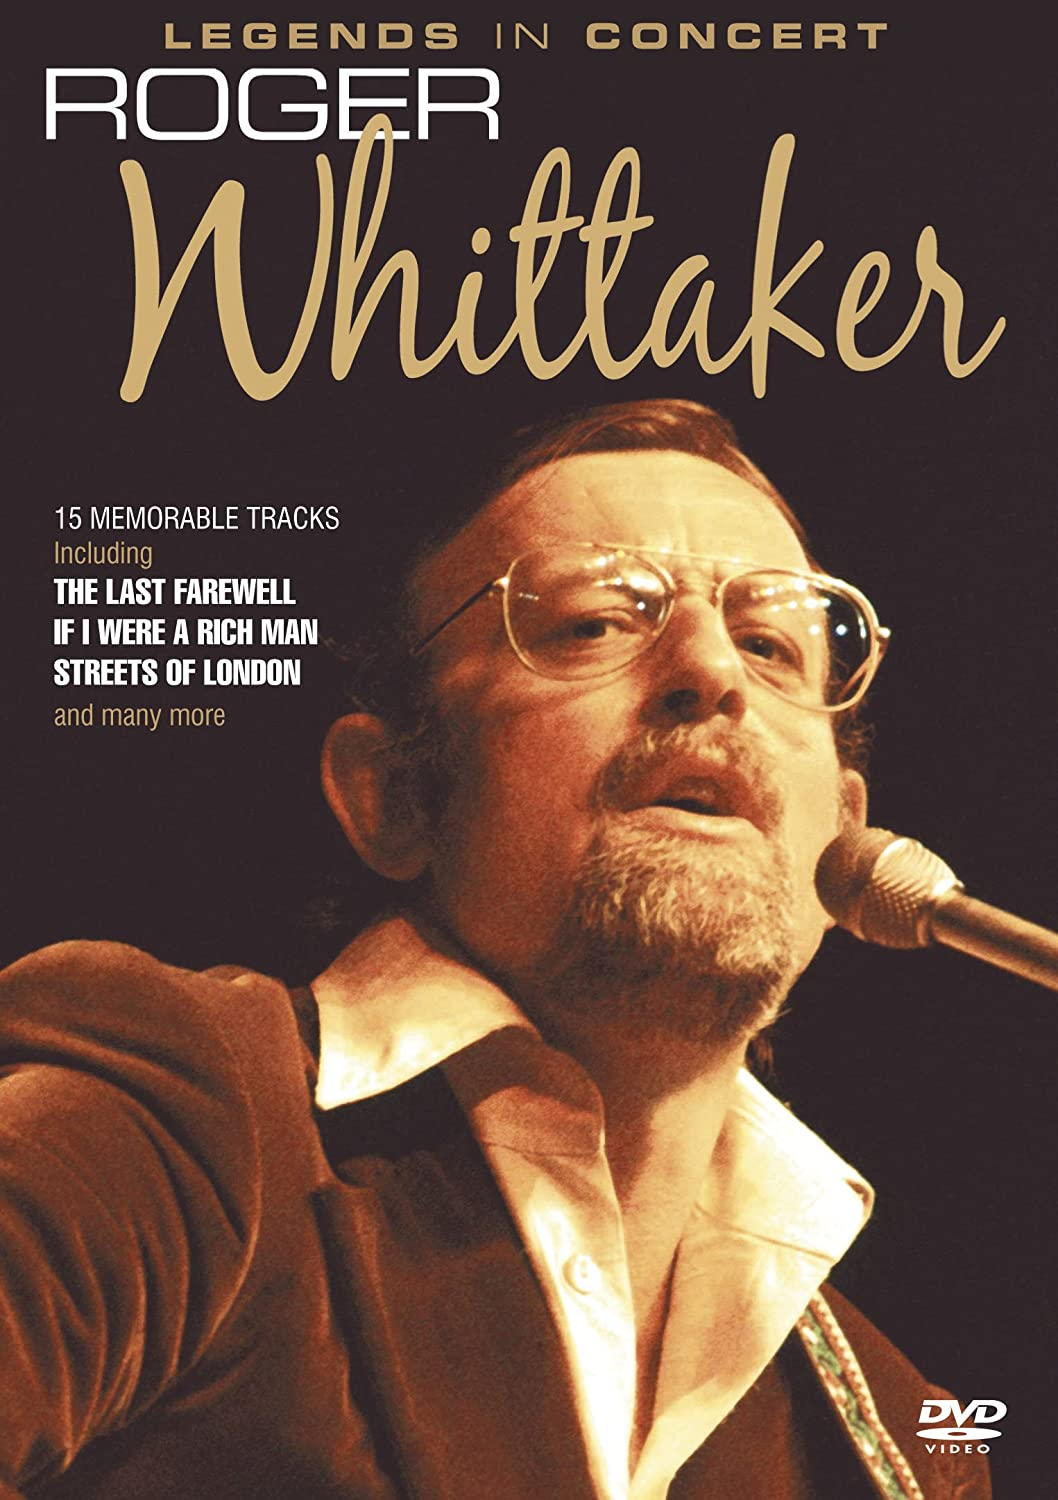 roger whittaker moments in my life sowenechi s blog. Black Bedroom Furniture Sets. Home Design Ideas